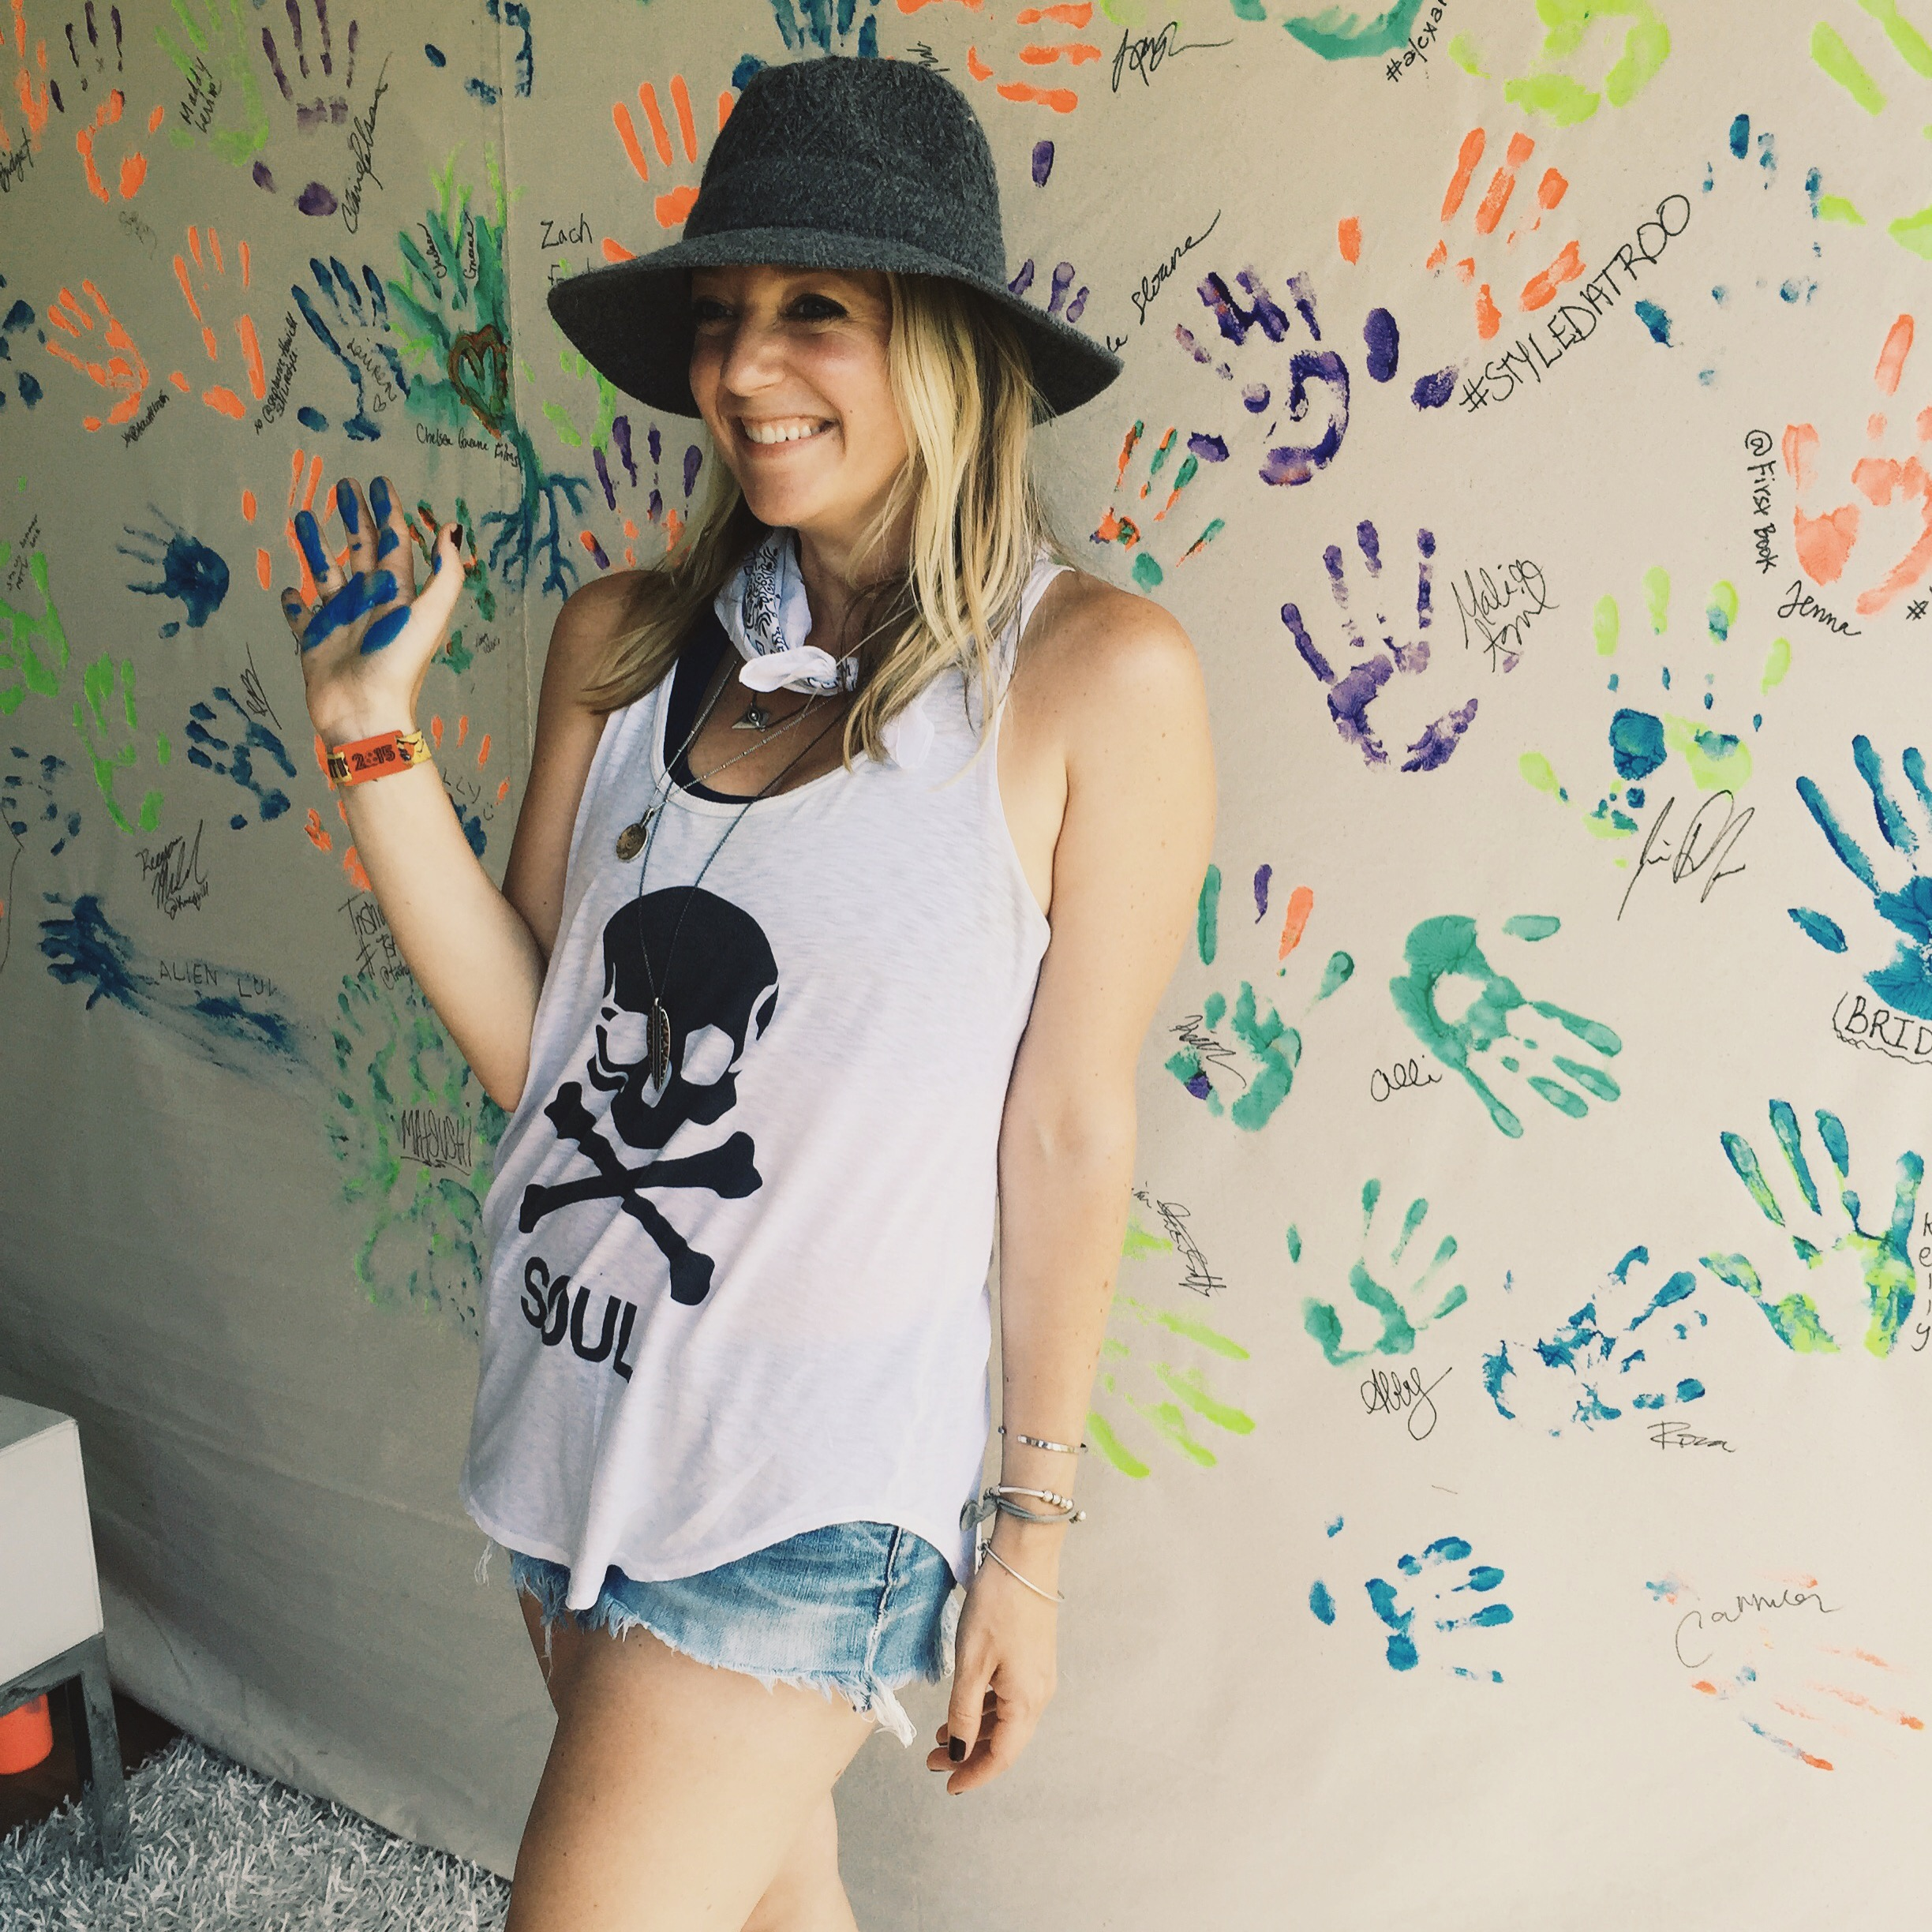 Kimberly making her mark for a cause backstage at Bonnaroo.